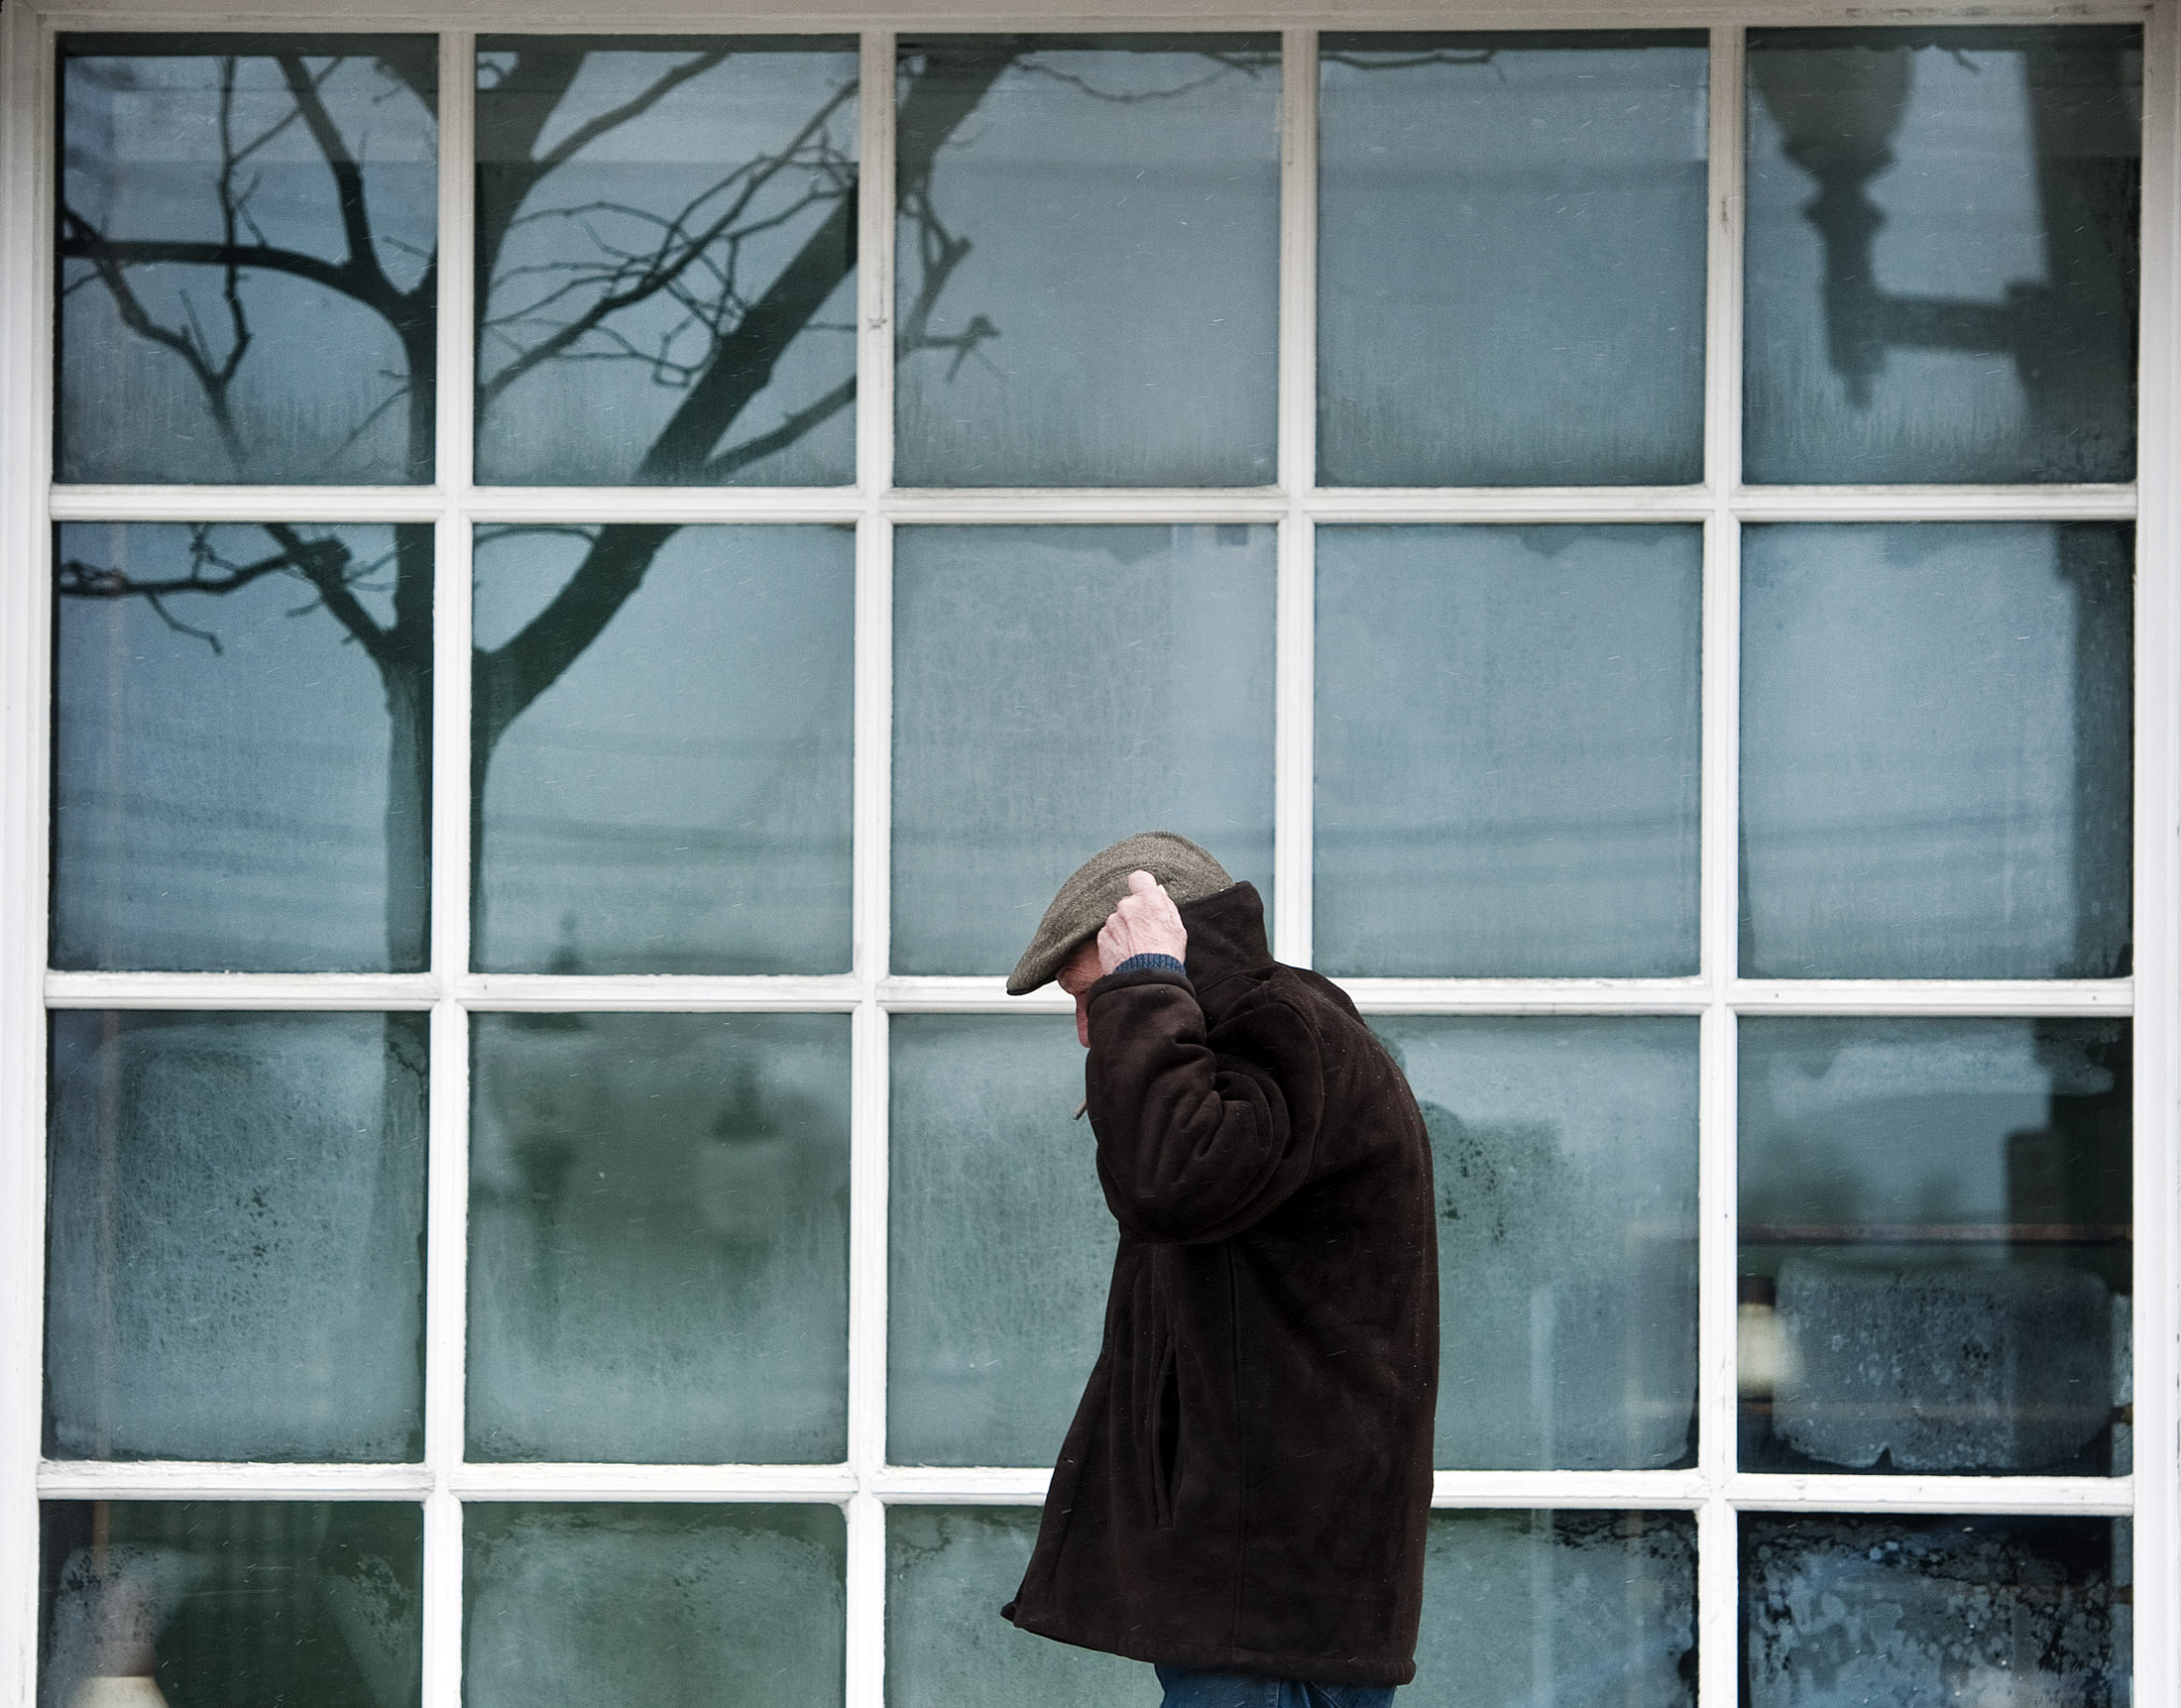 Steven Kaminski of Greensburg lifts his collar over his ears while smoking a cigar past a frosty window along Main Street in Greensburg on Monday, Jan 18., 2016. The National Weather Service has issued a wind chill advisory until noon Monday. Winds are expected at 10-15 mph, with gusts up to 25 mph.